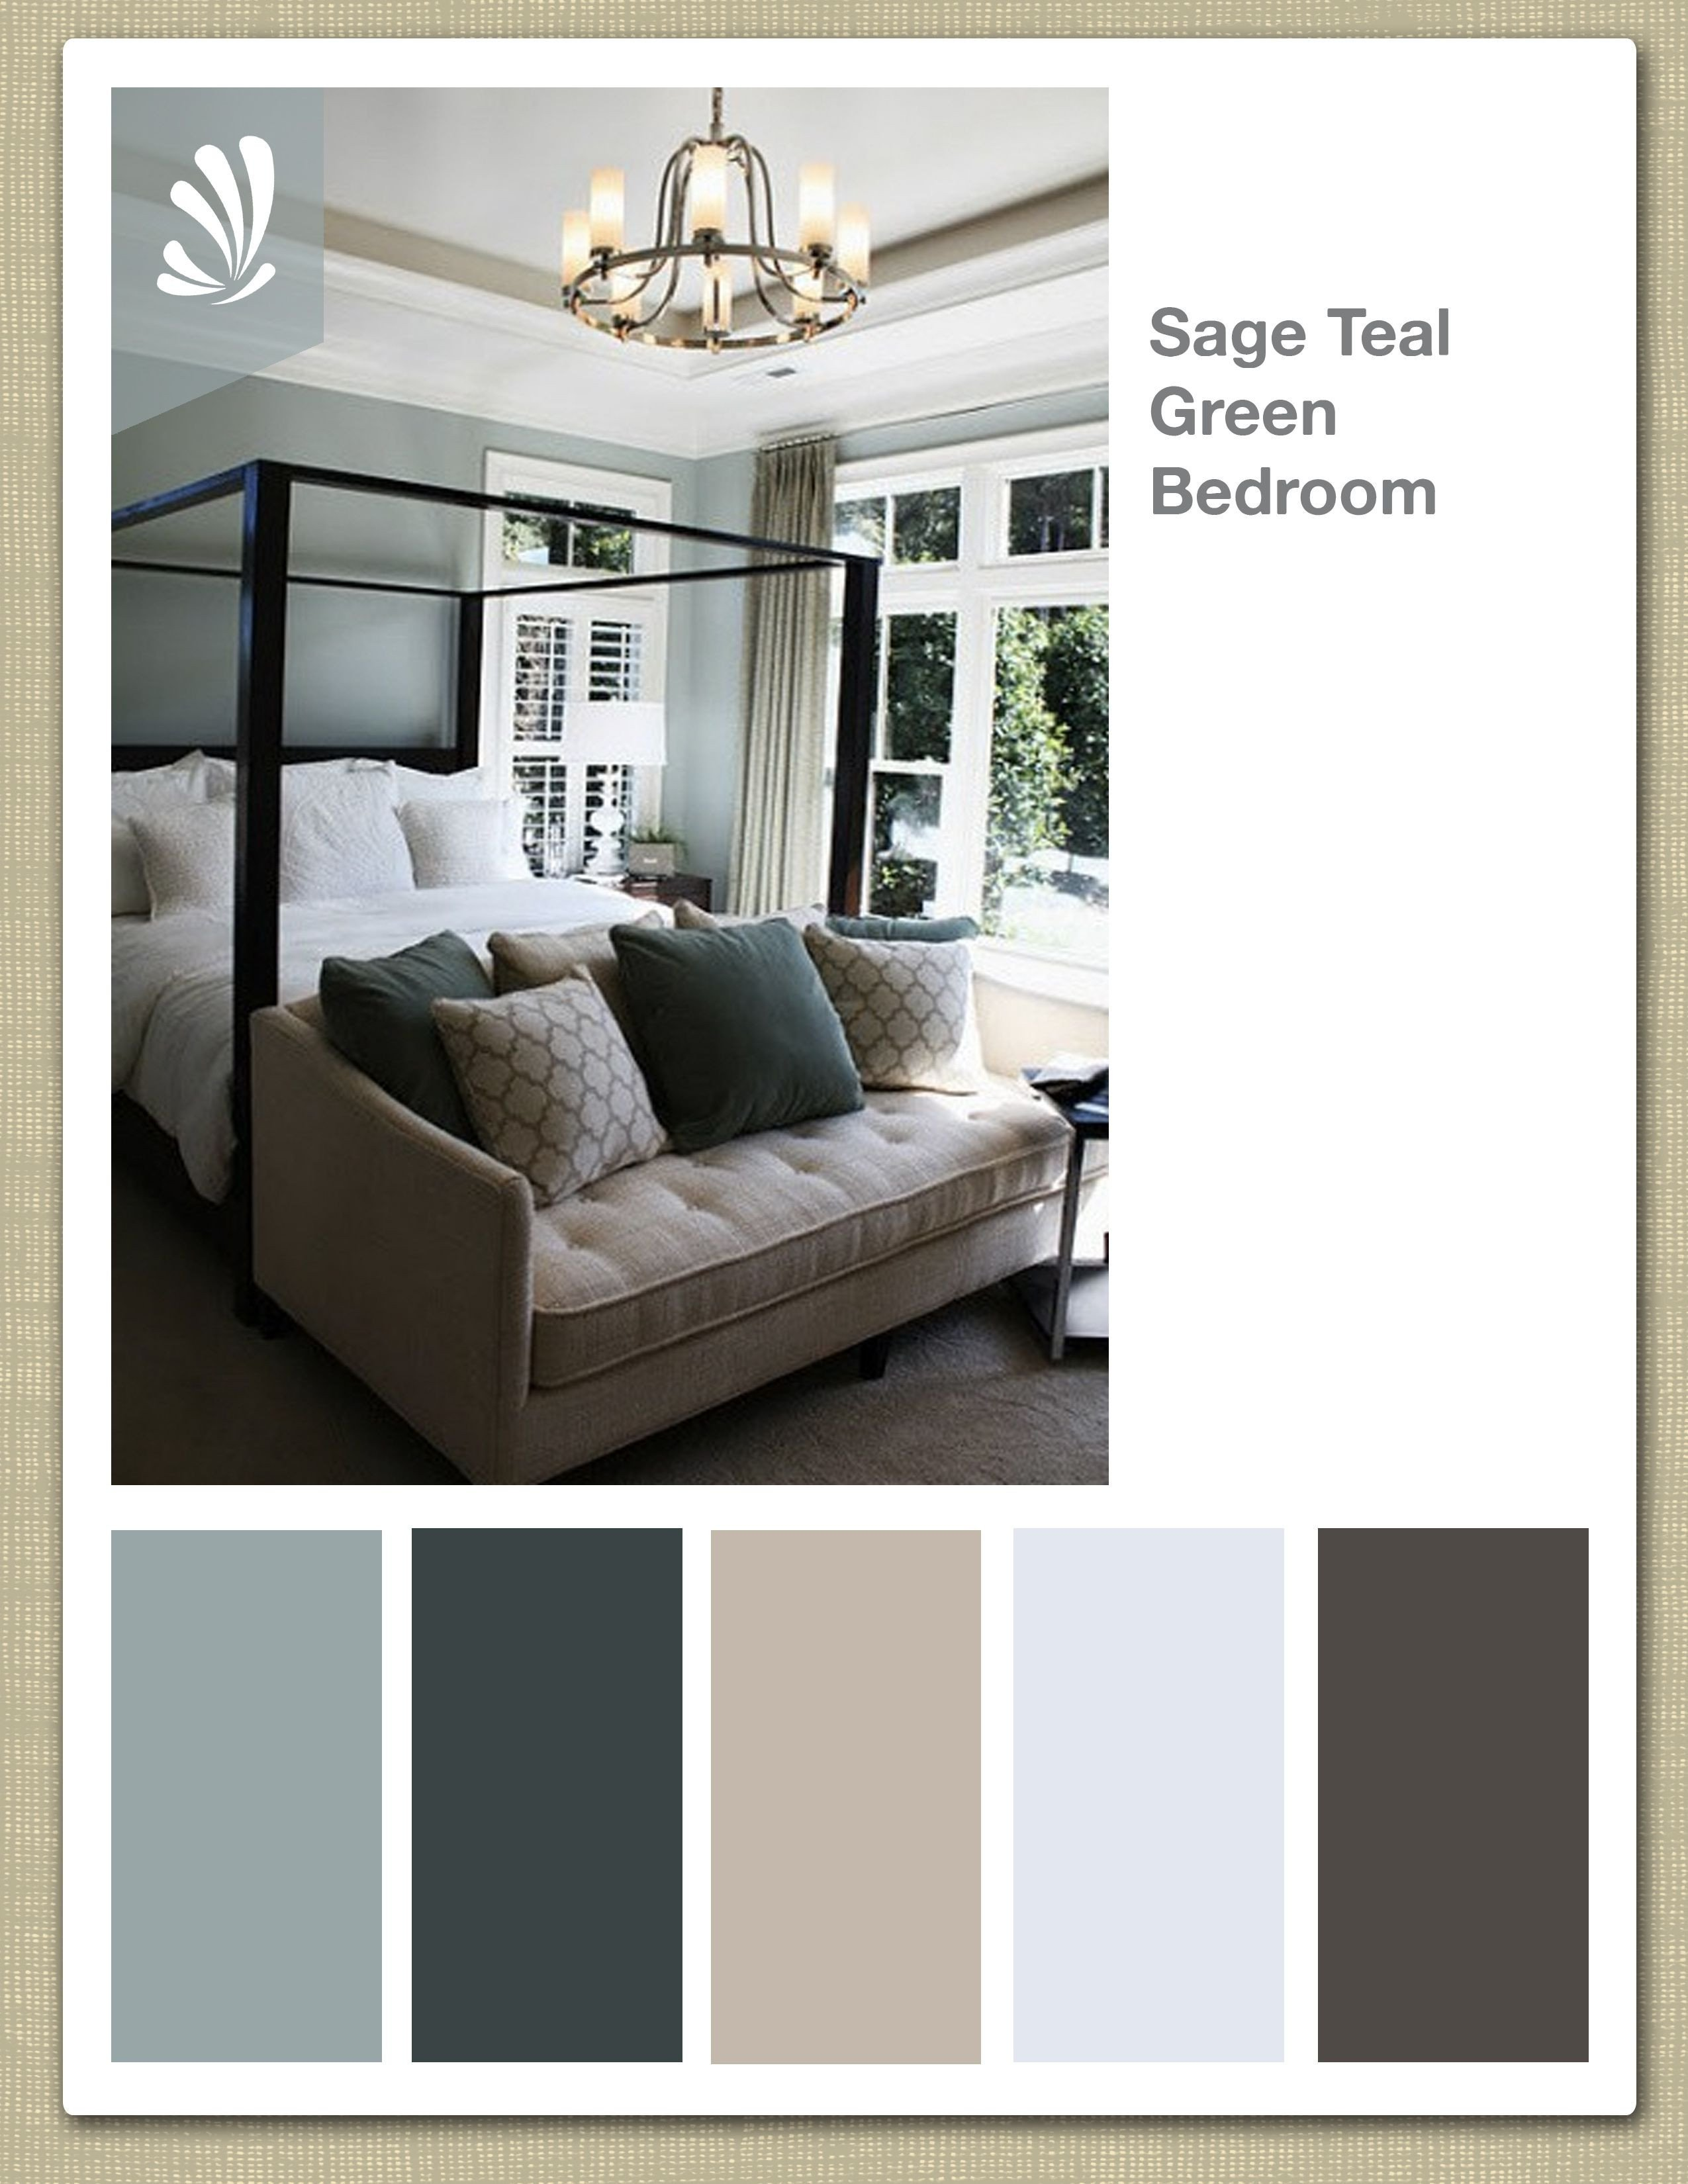 Sage Green Bedroom Ideas Elegant Sage Cream Oil Gray and Teal Green Color Palette soothing